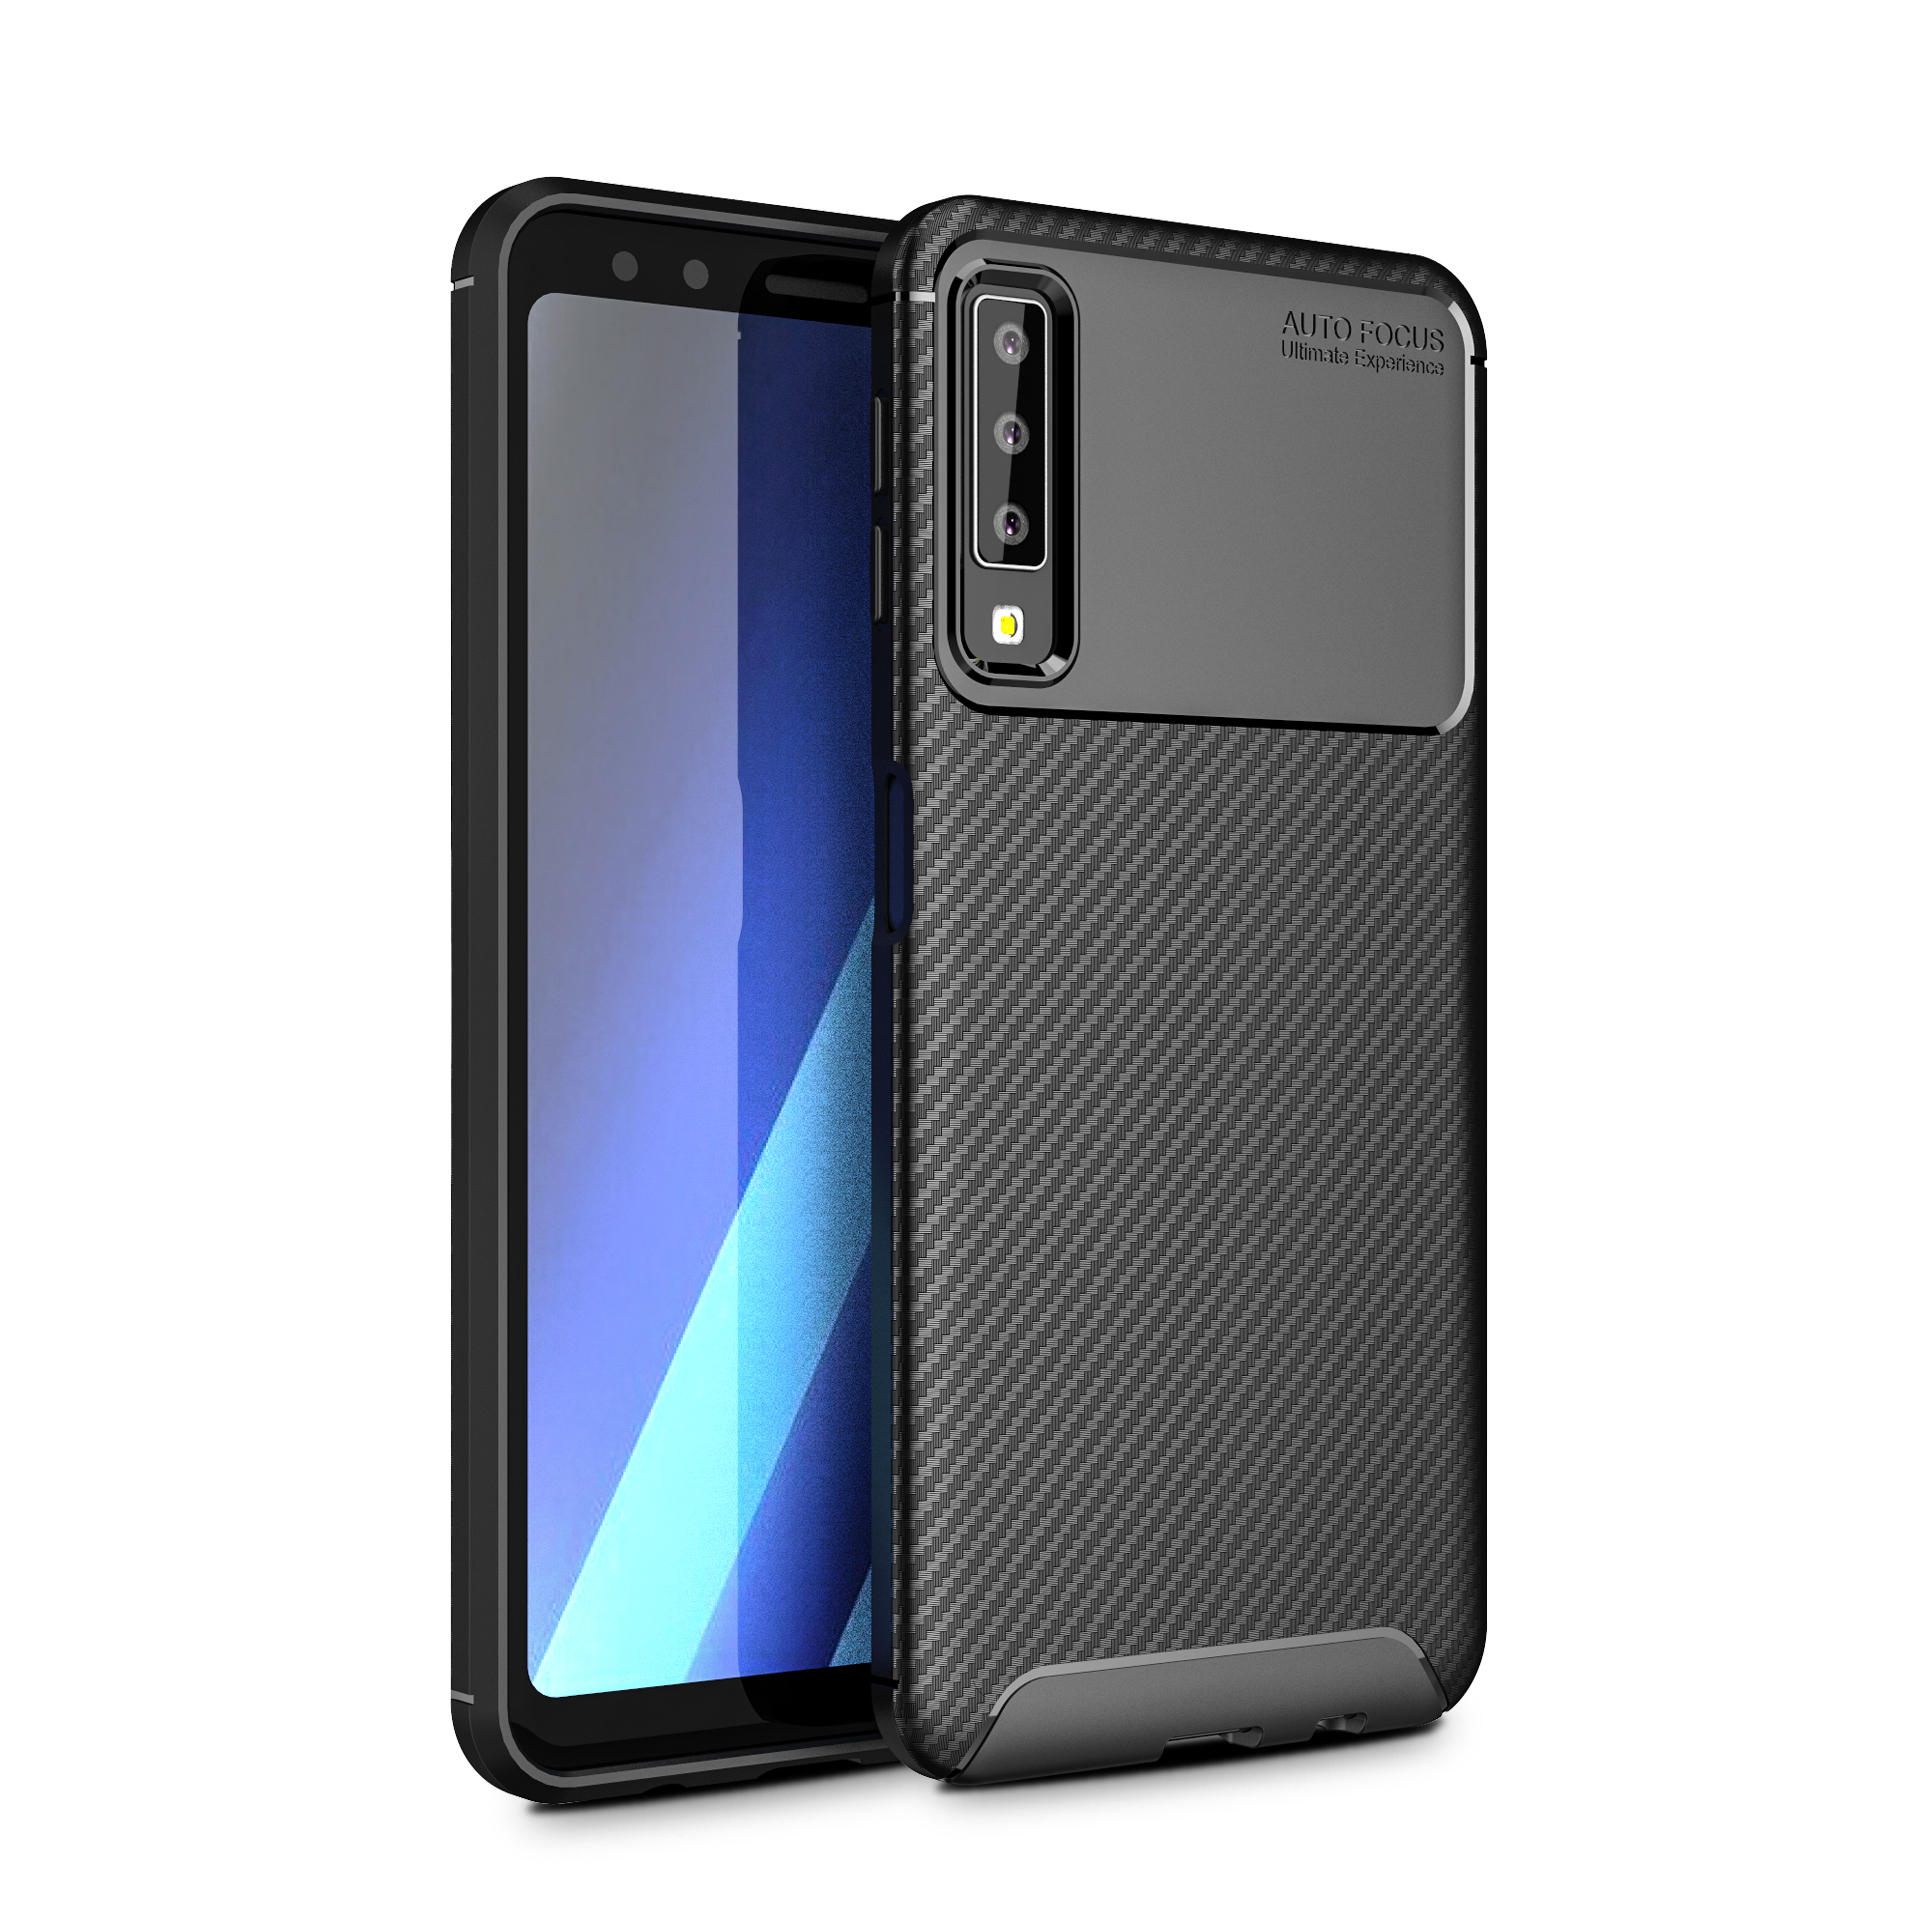 Bakeey Protective Case For Samsung Galaxy A7 2018 Carbon Fiber Fingerprint Resistant Soft TPU Back Cover